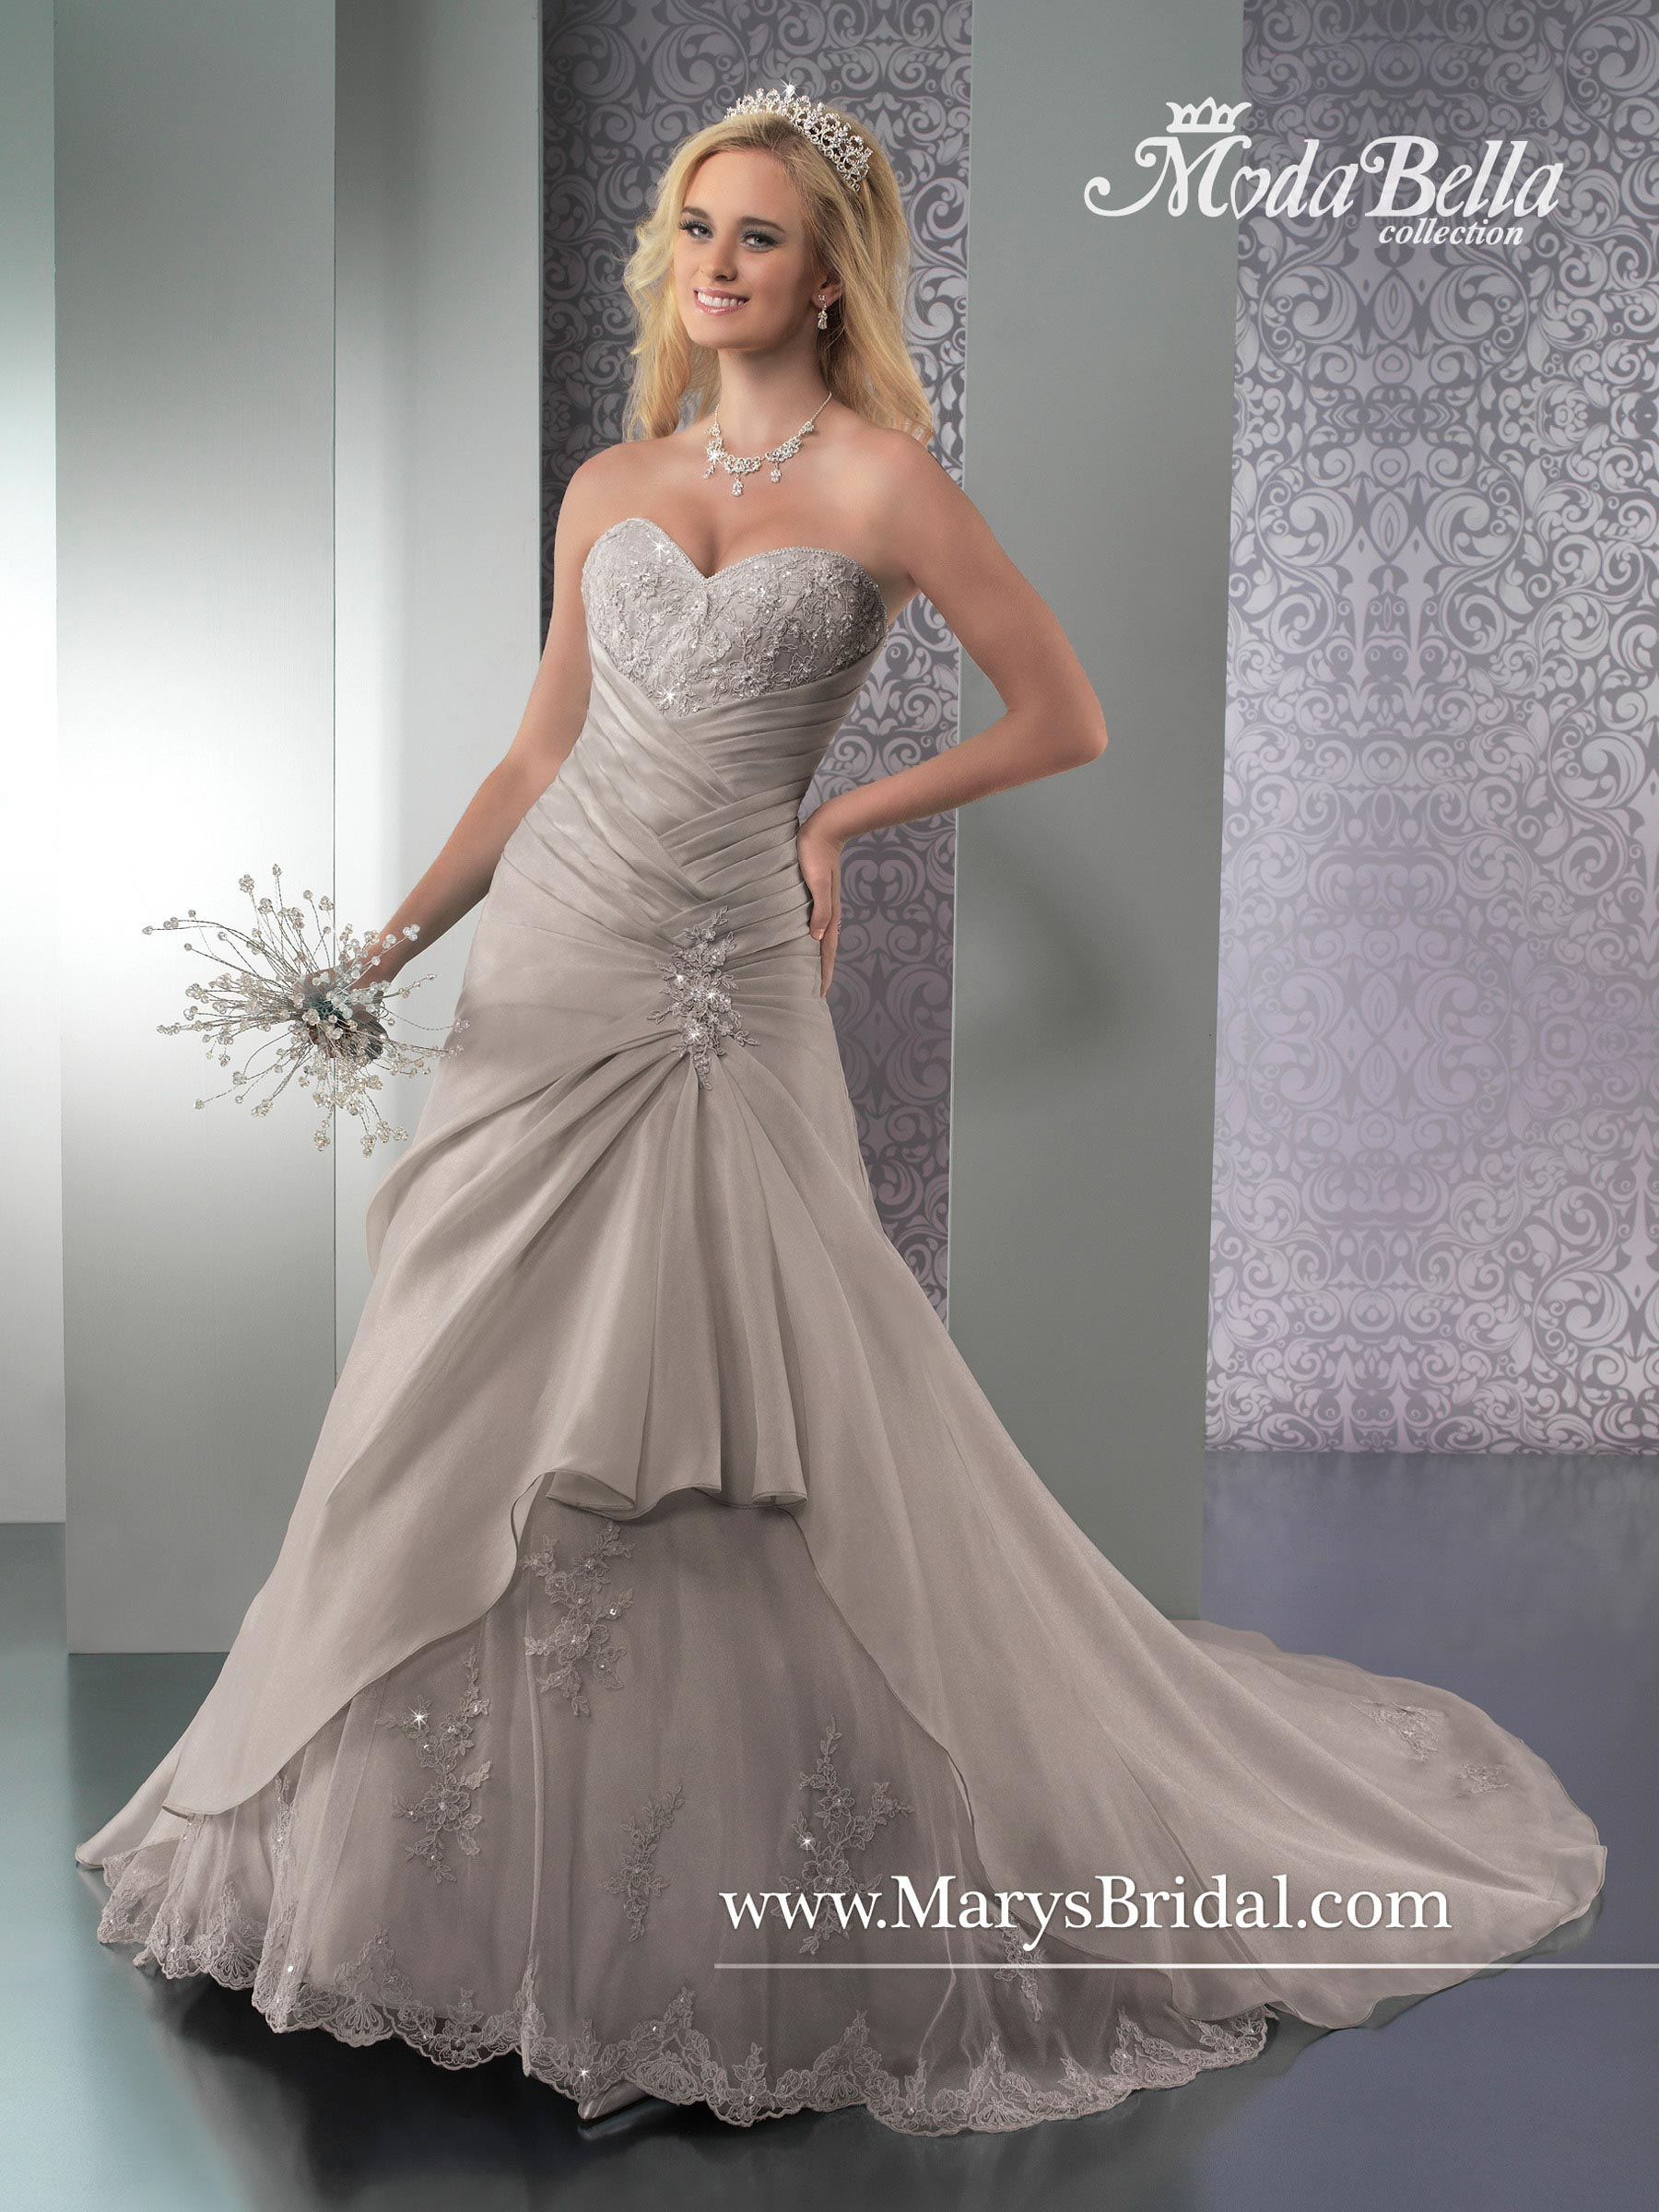 Bridal Dresses Style 3y258 In Ivory White Silver 25th Anniversary Color Color